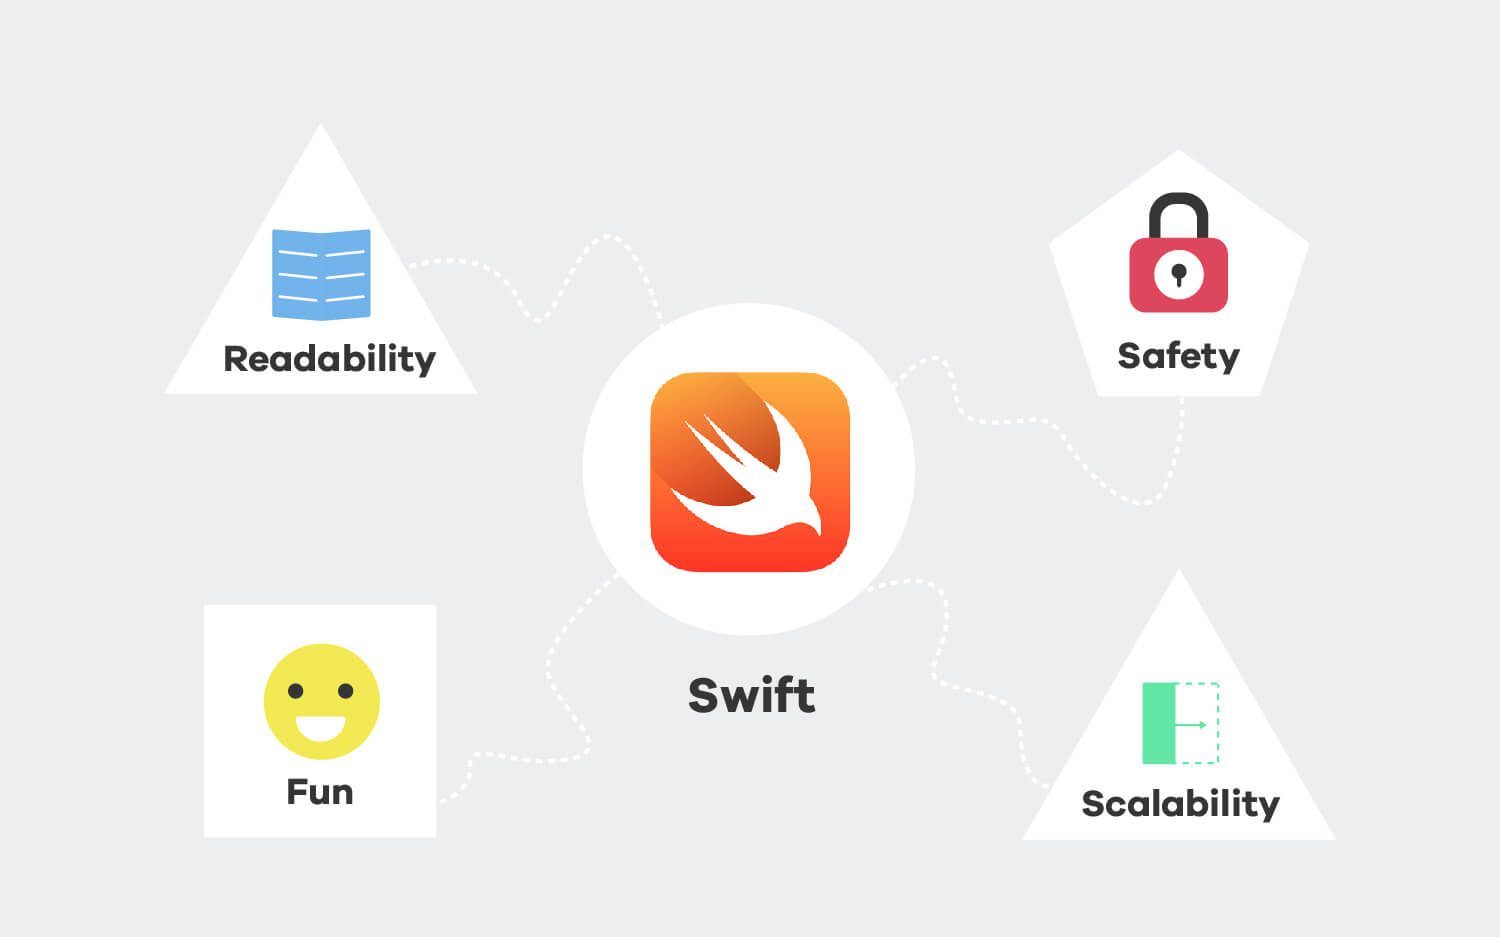 Swift is an awesome language for developing with iOS.